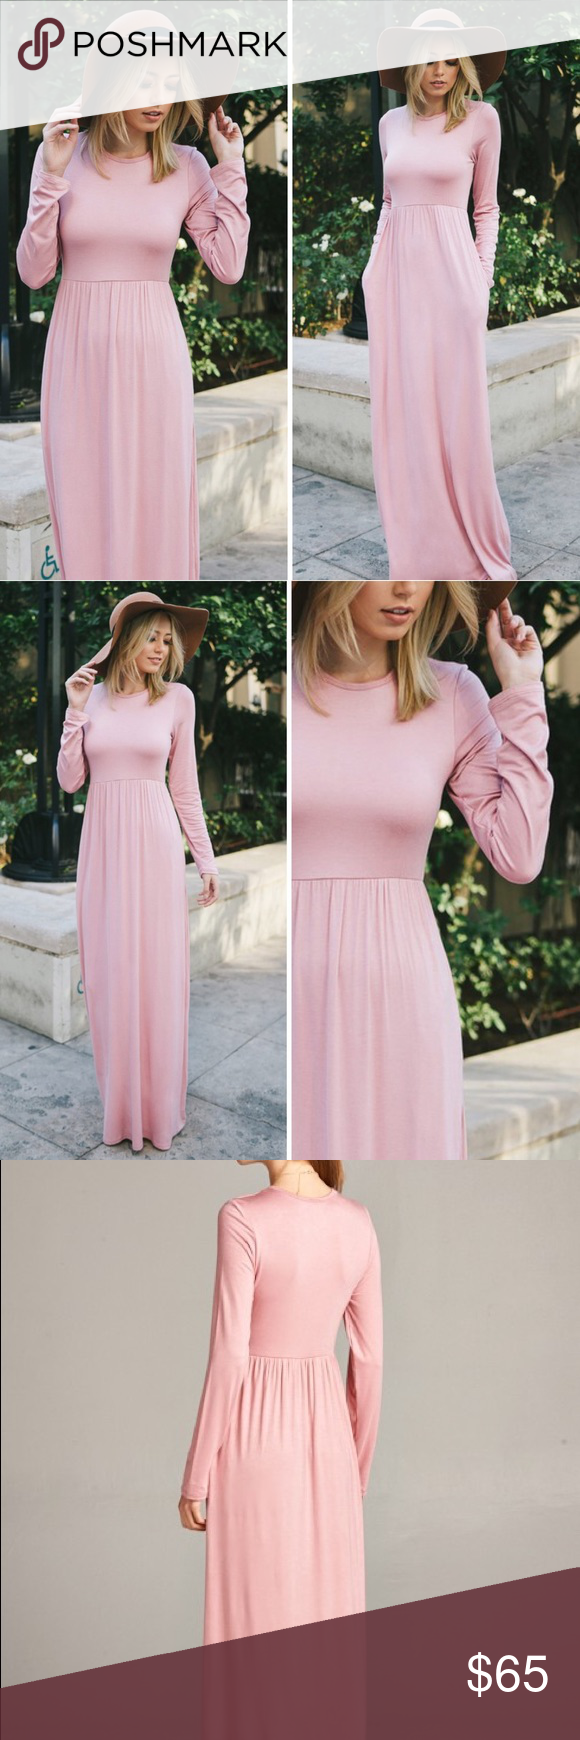 Long sleeve maxi dress just arrived boutique long sleeve maxi